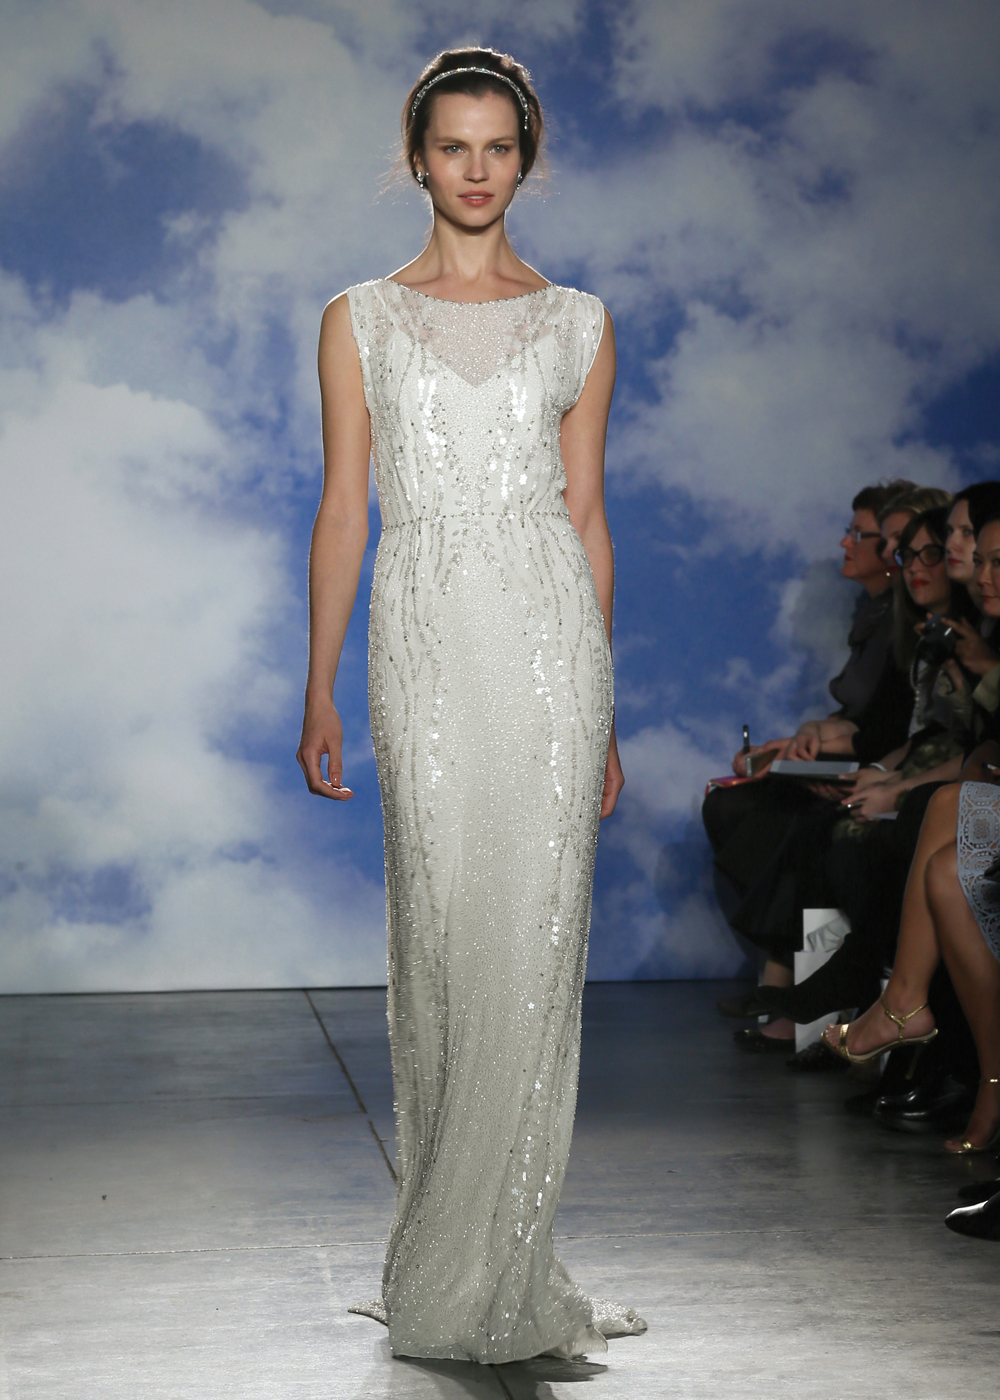 Jenny Packham Avant-garde Sheath Wedding Gown